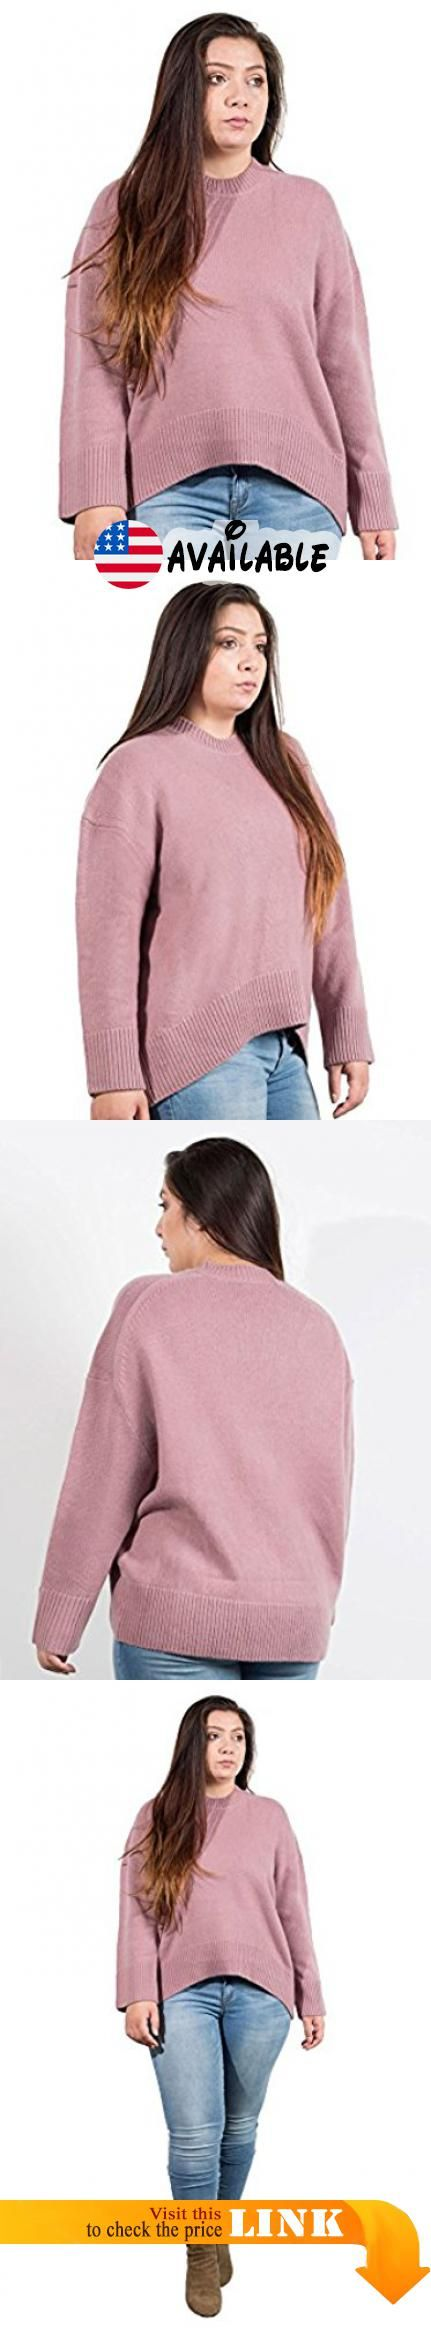 B076JS653C : NAKEDCASHMERE Women's Holliday Crew Sweater XL